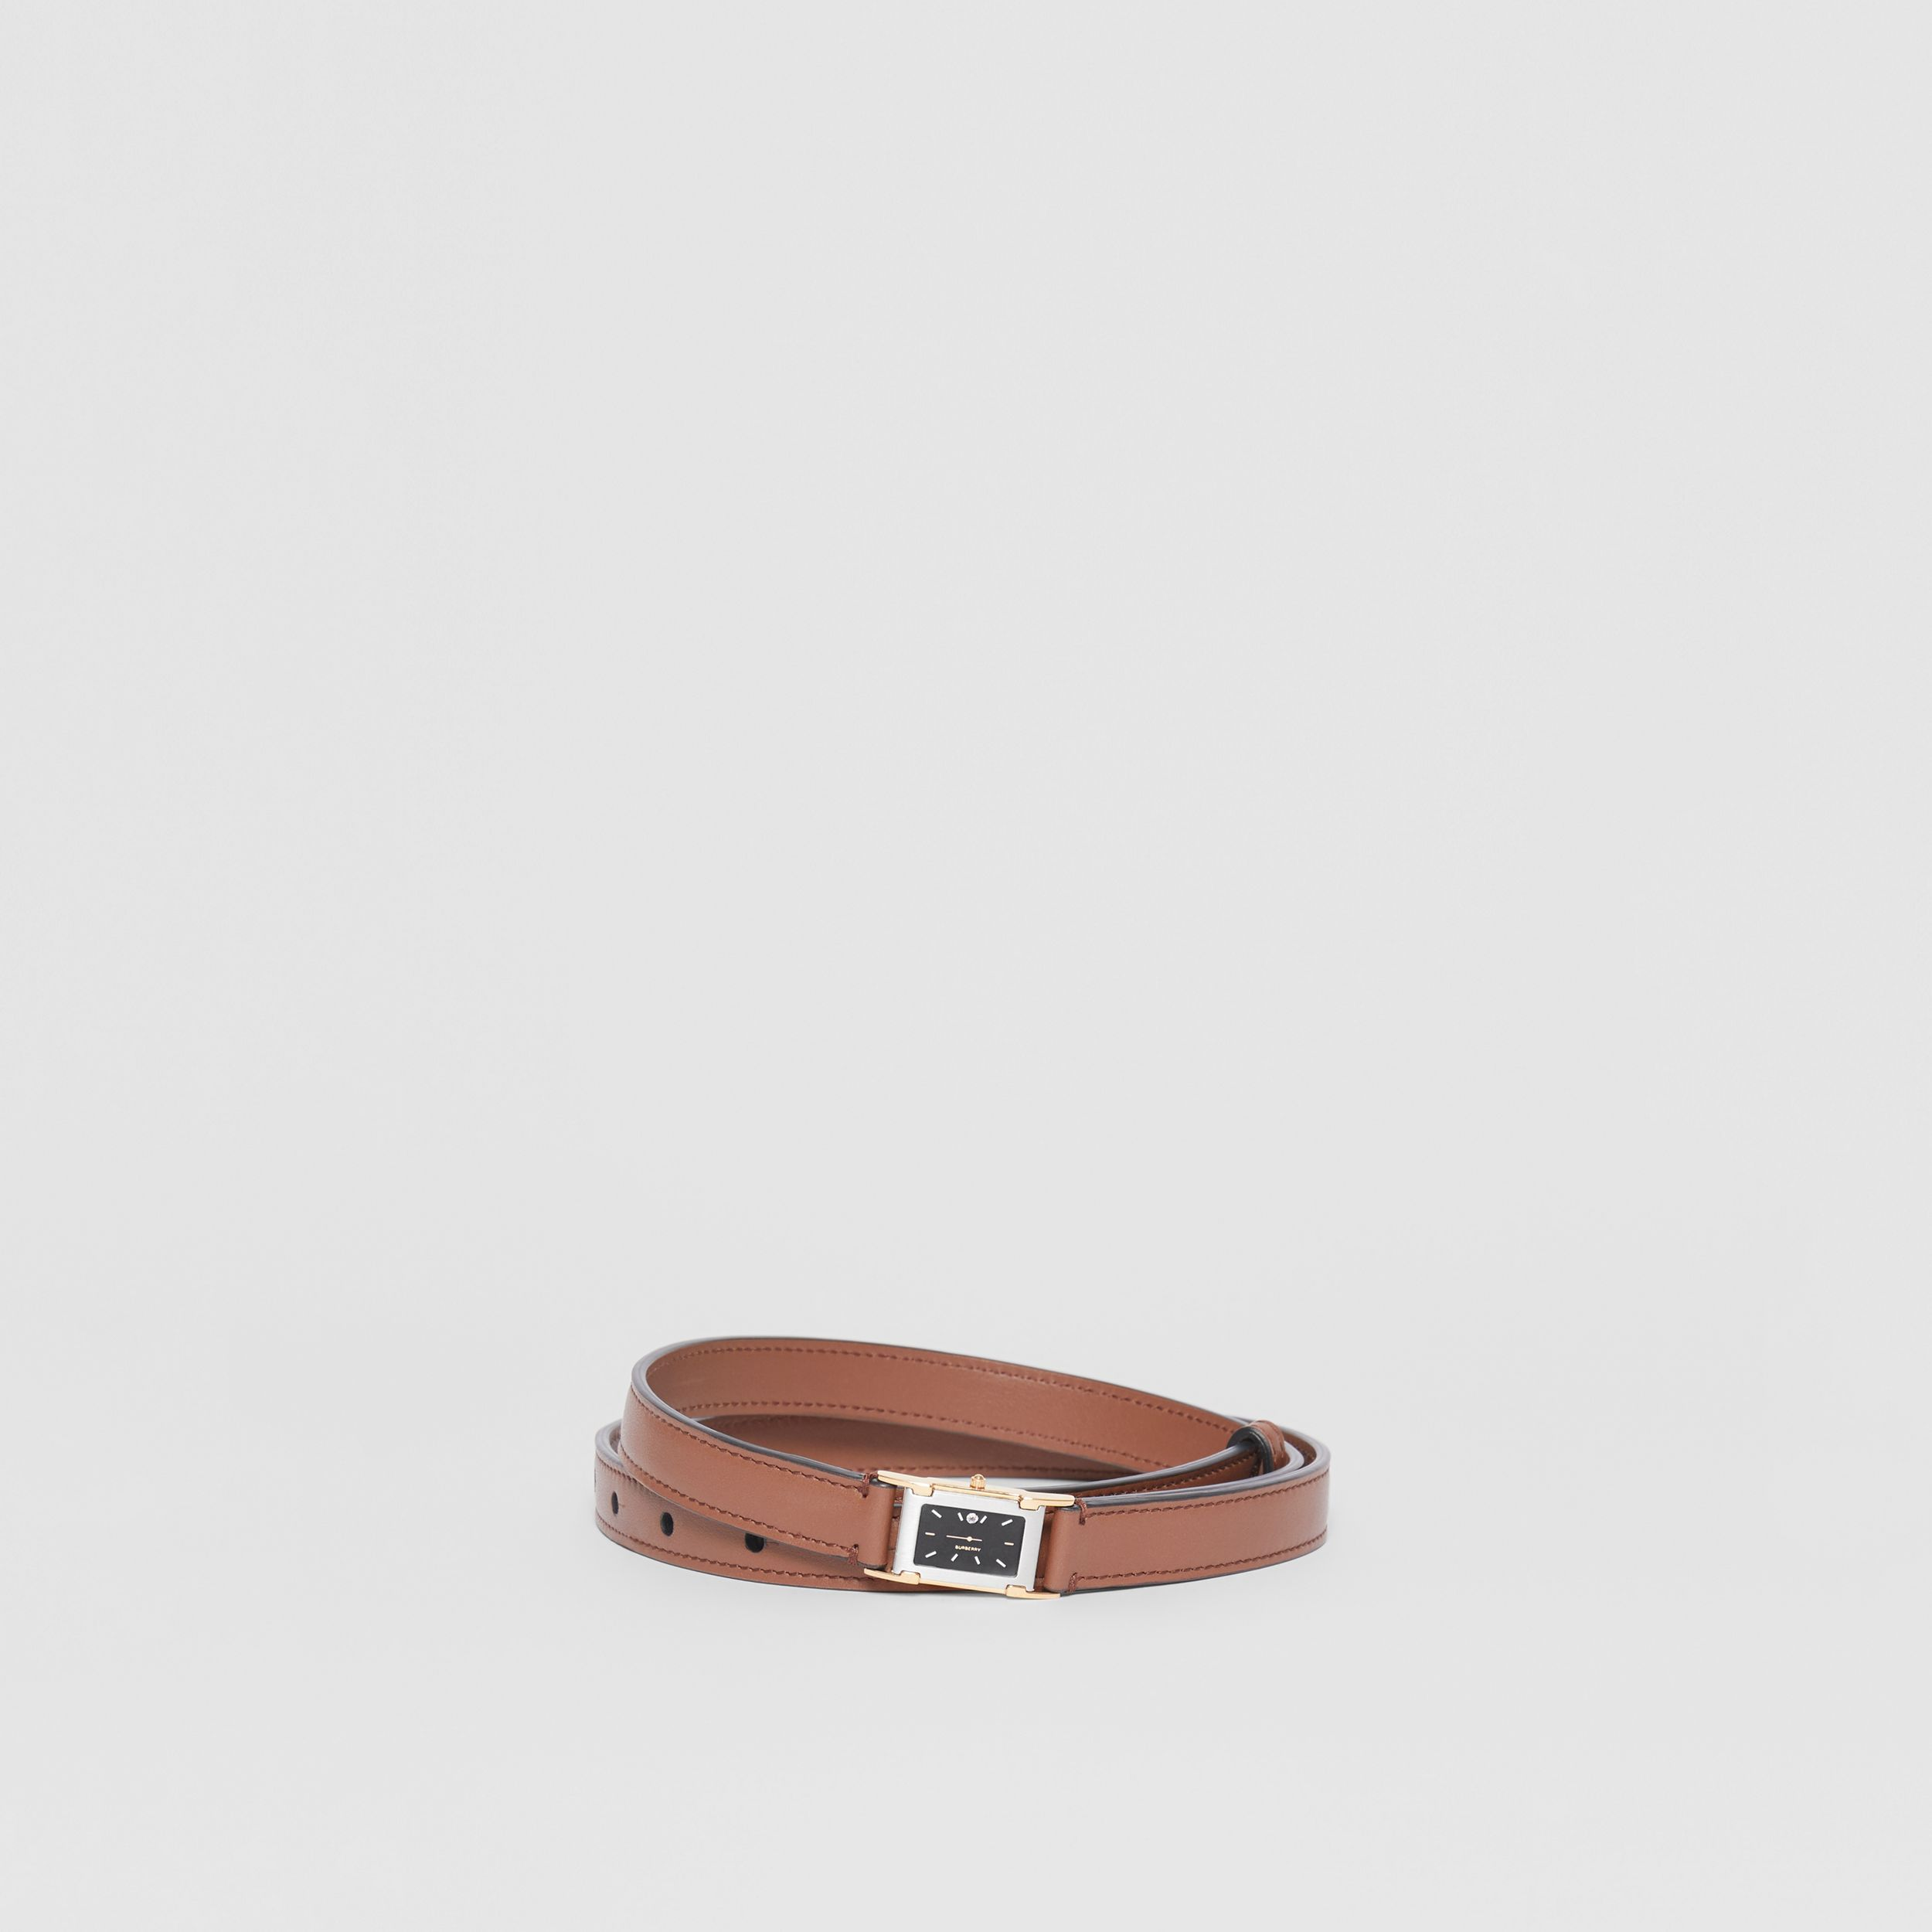 Faux Watch Detail Leather Belt in Tan - Men | Burberry Hong Kong S.A.R - 1